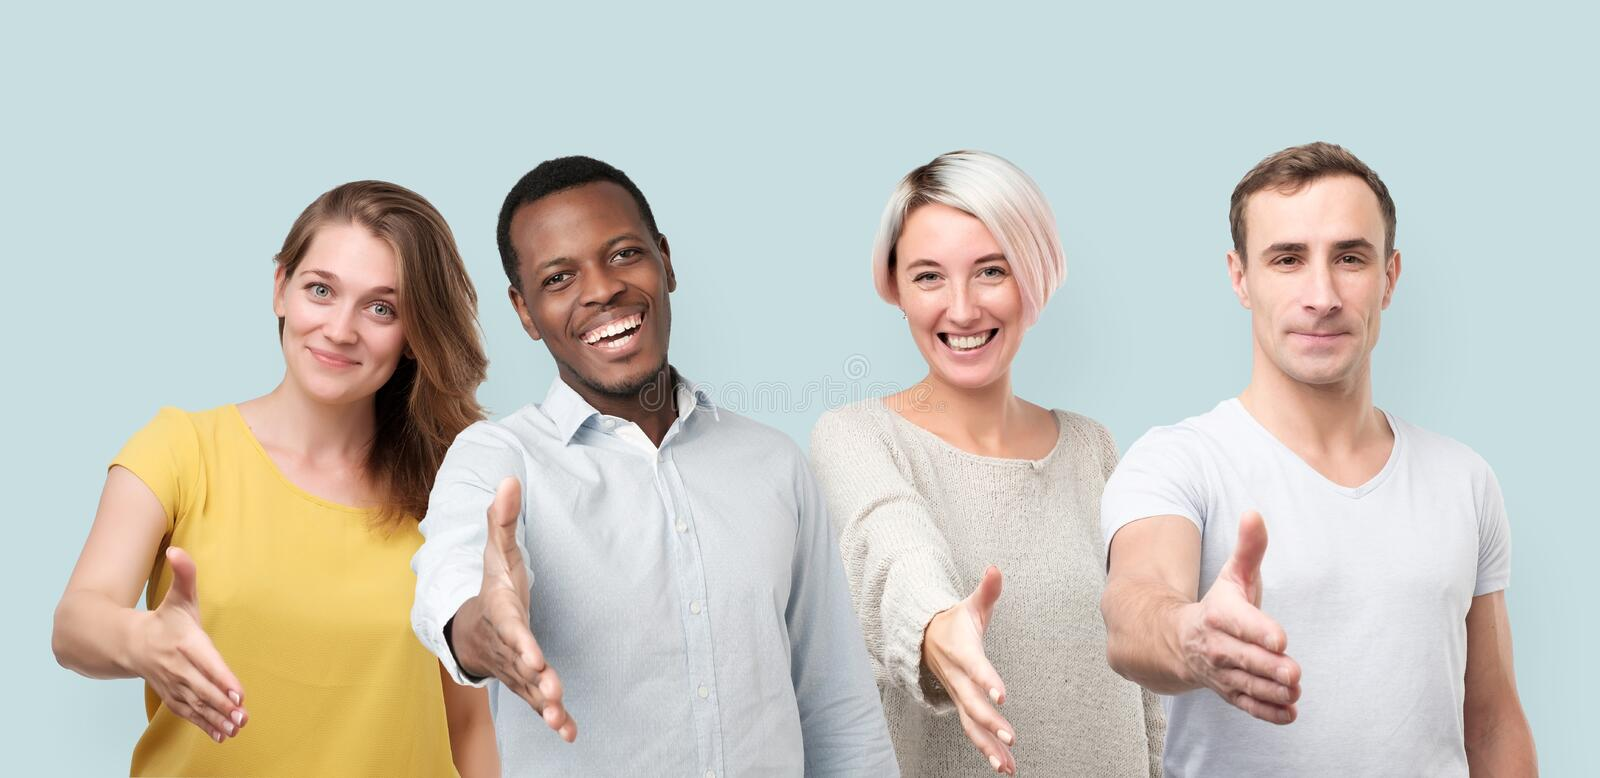 Collage of men and women giving hand for shaking. Welcoming their new coworker. Positive facial human emotion stock image